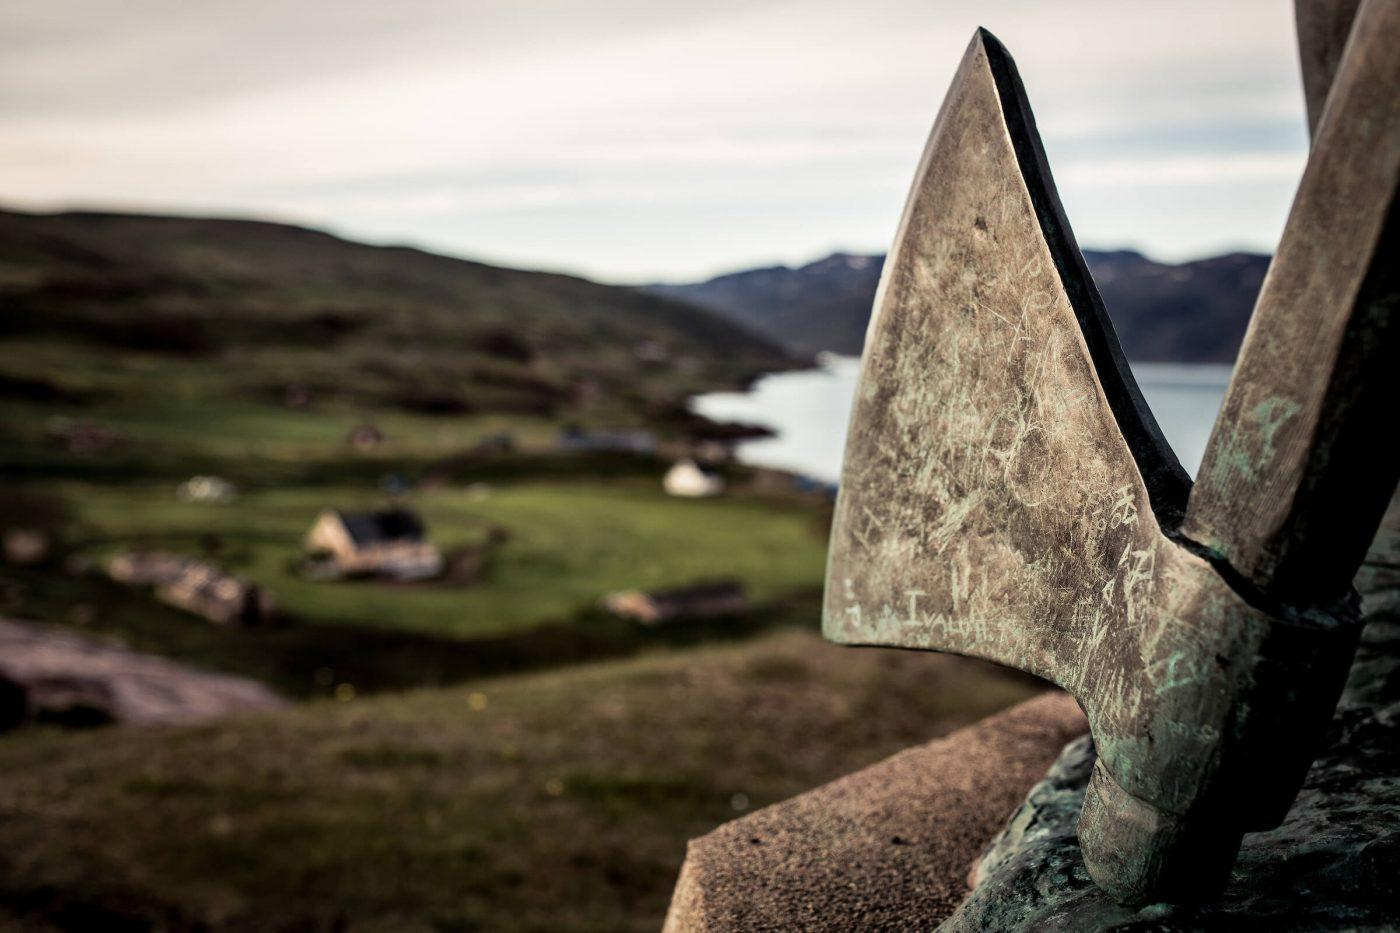 The axe of Leif Erikson - the statue overlooking Qassiarsuk in South Greenland, by Mads Pihl